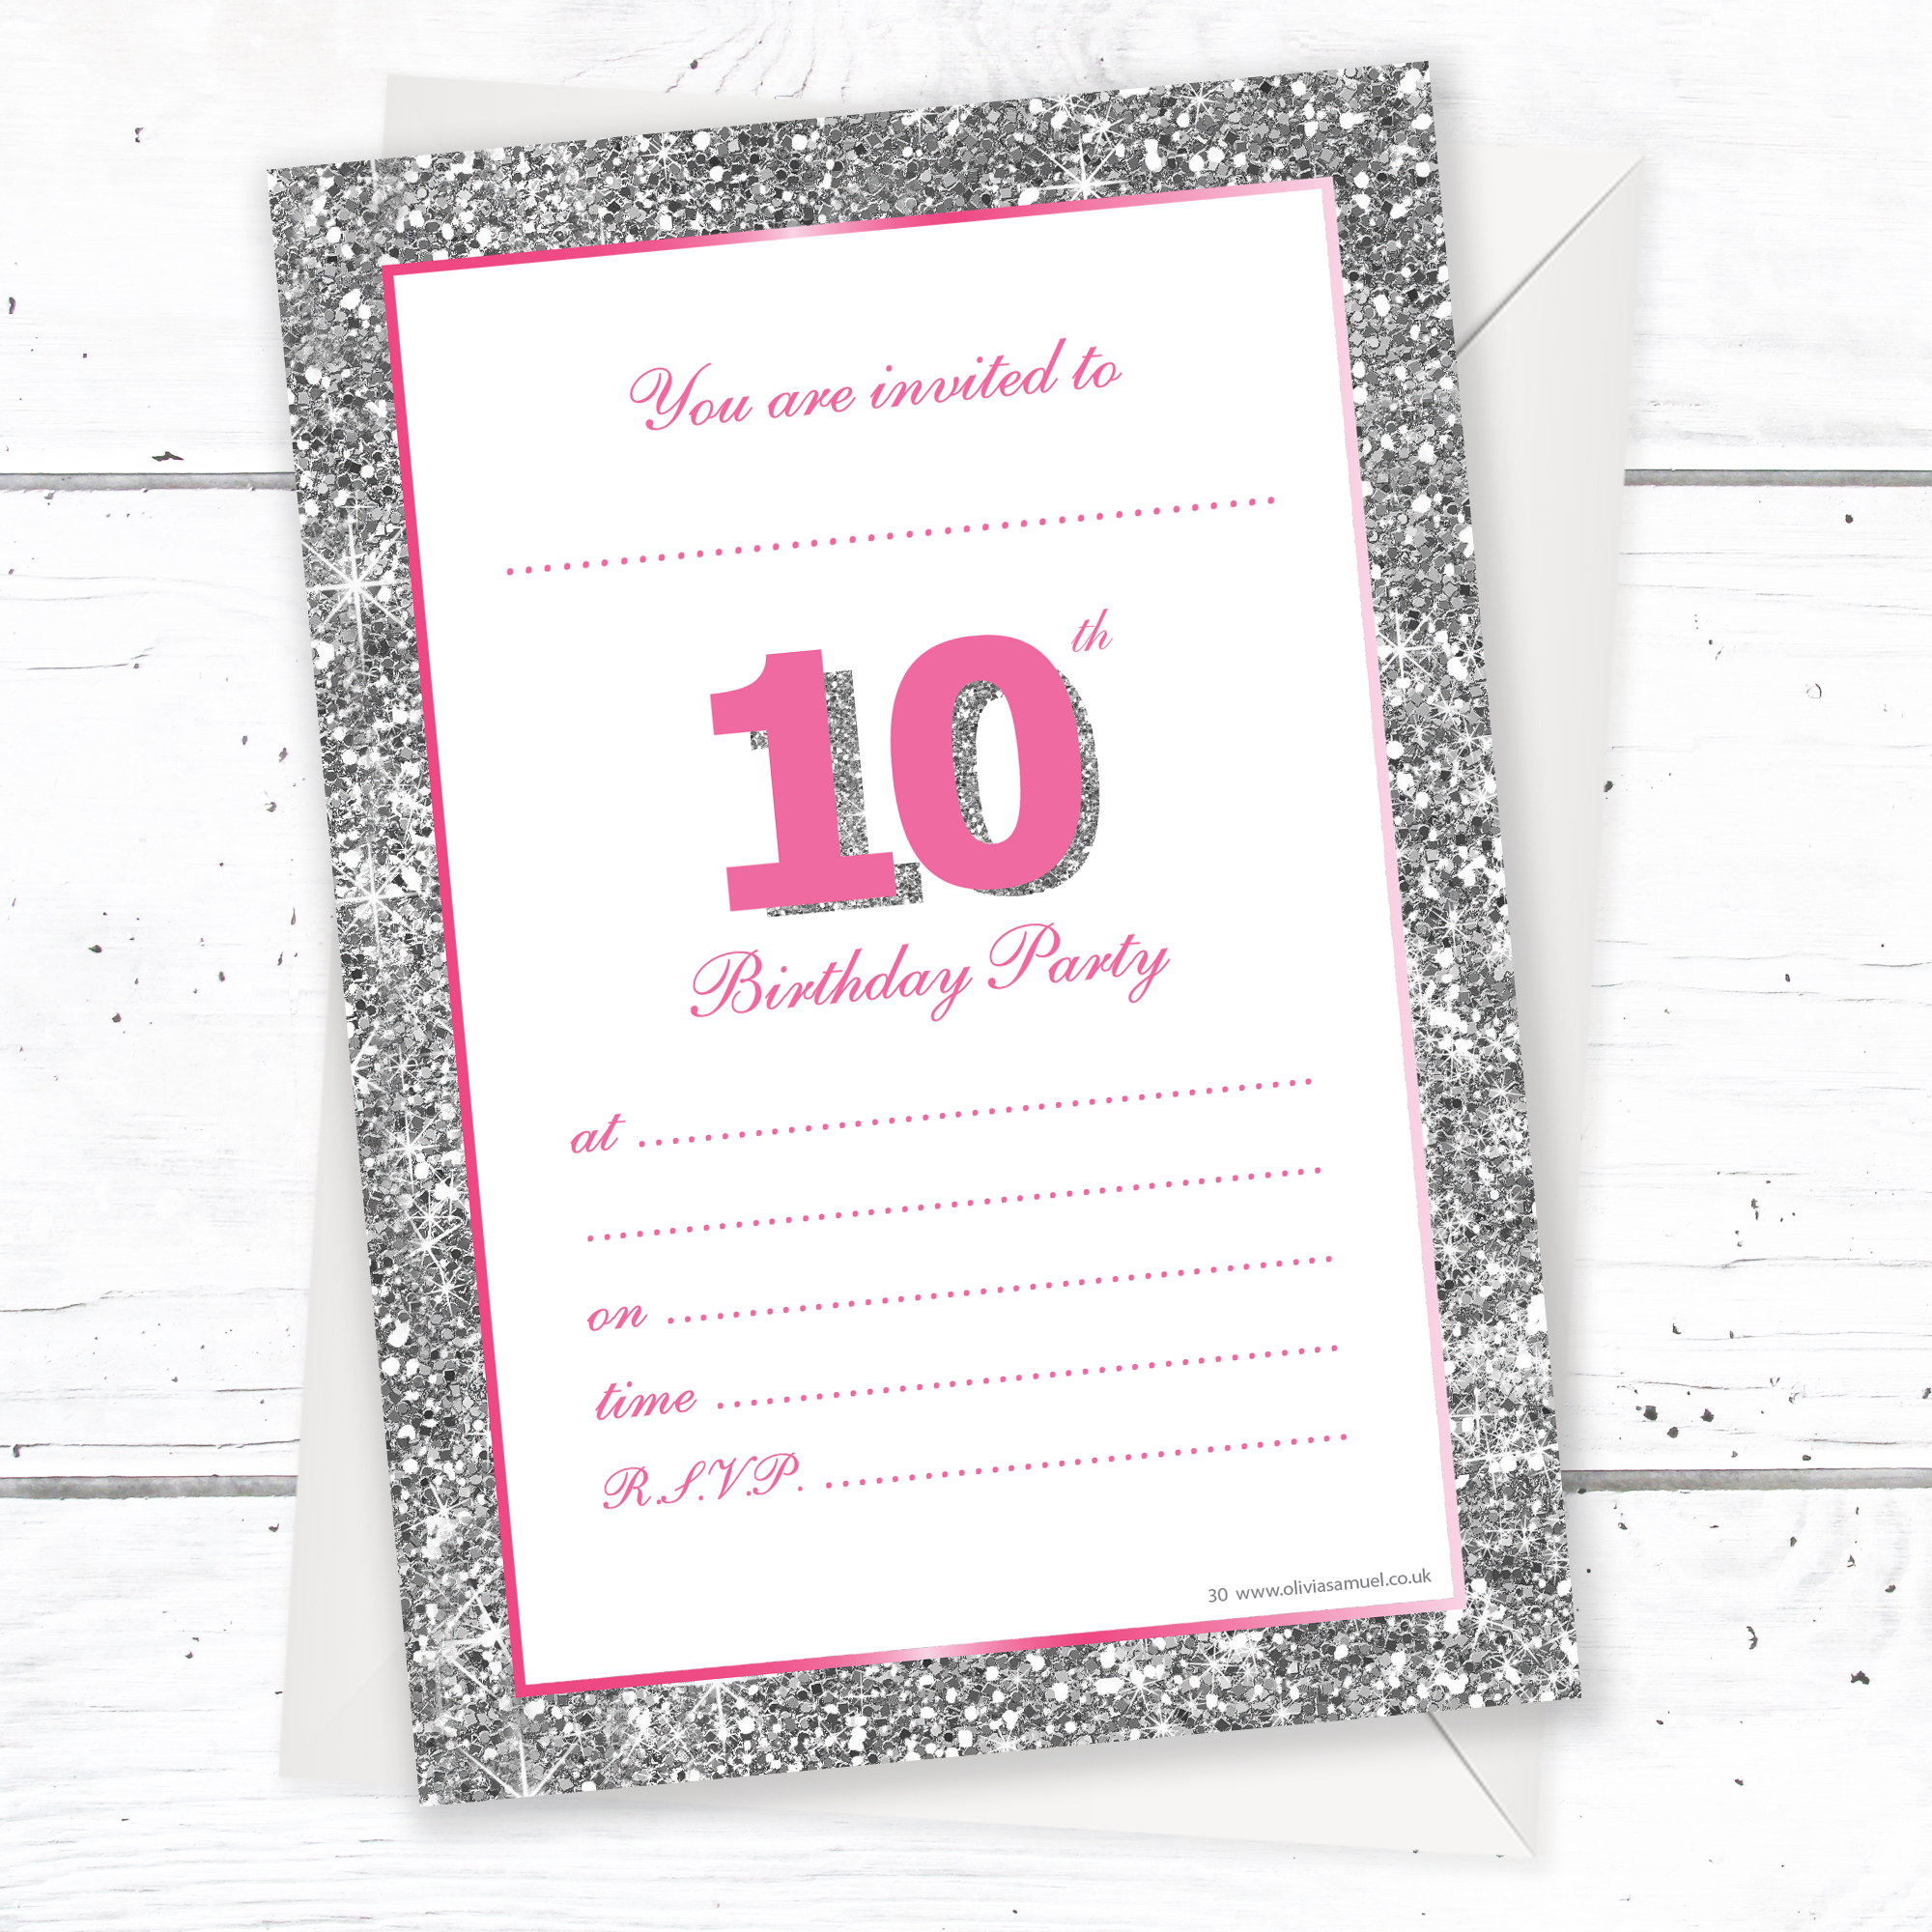 10th Birthday Party Invitations – Pink Sparkly Design and ...